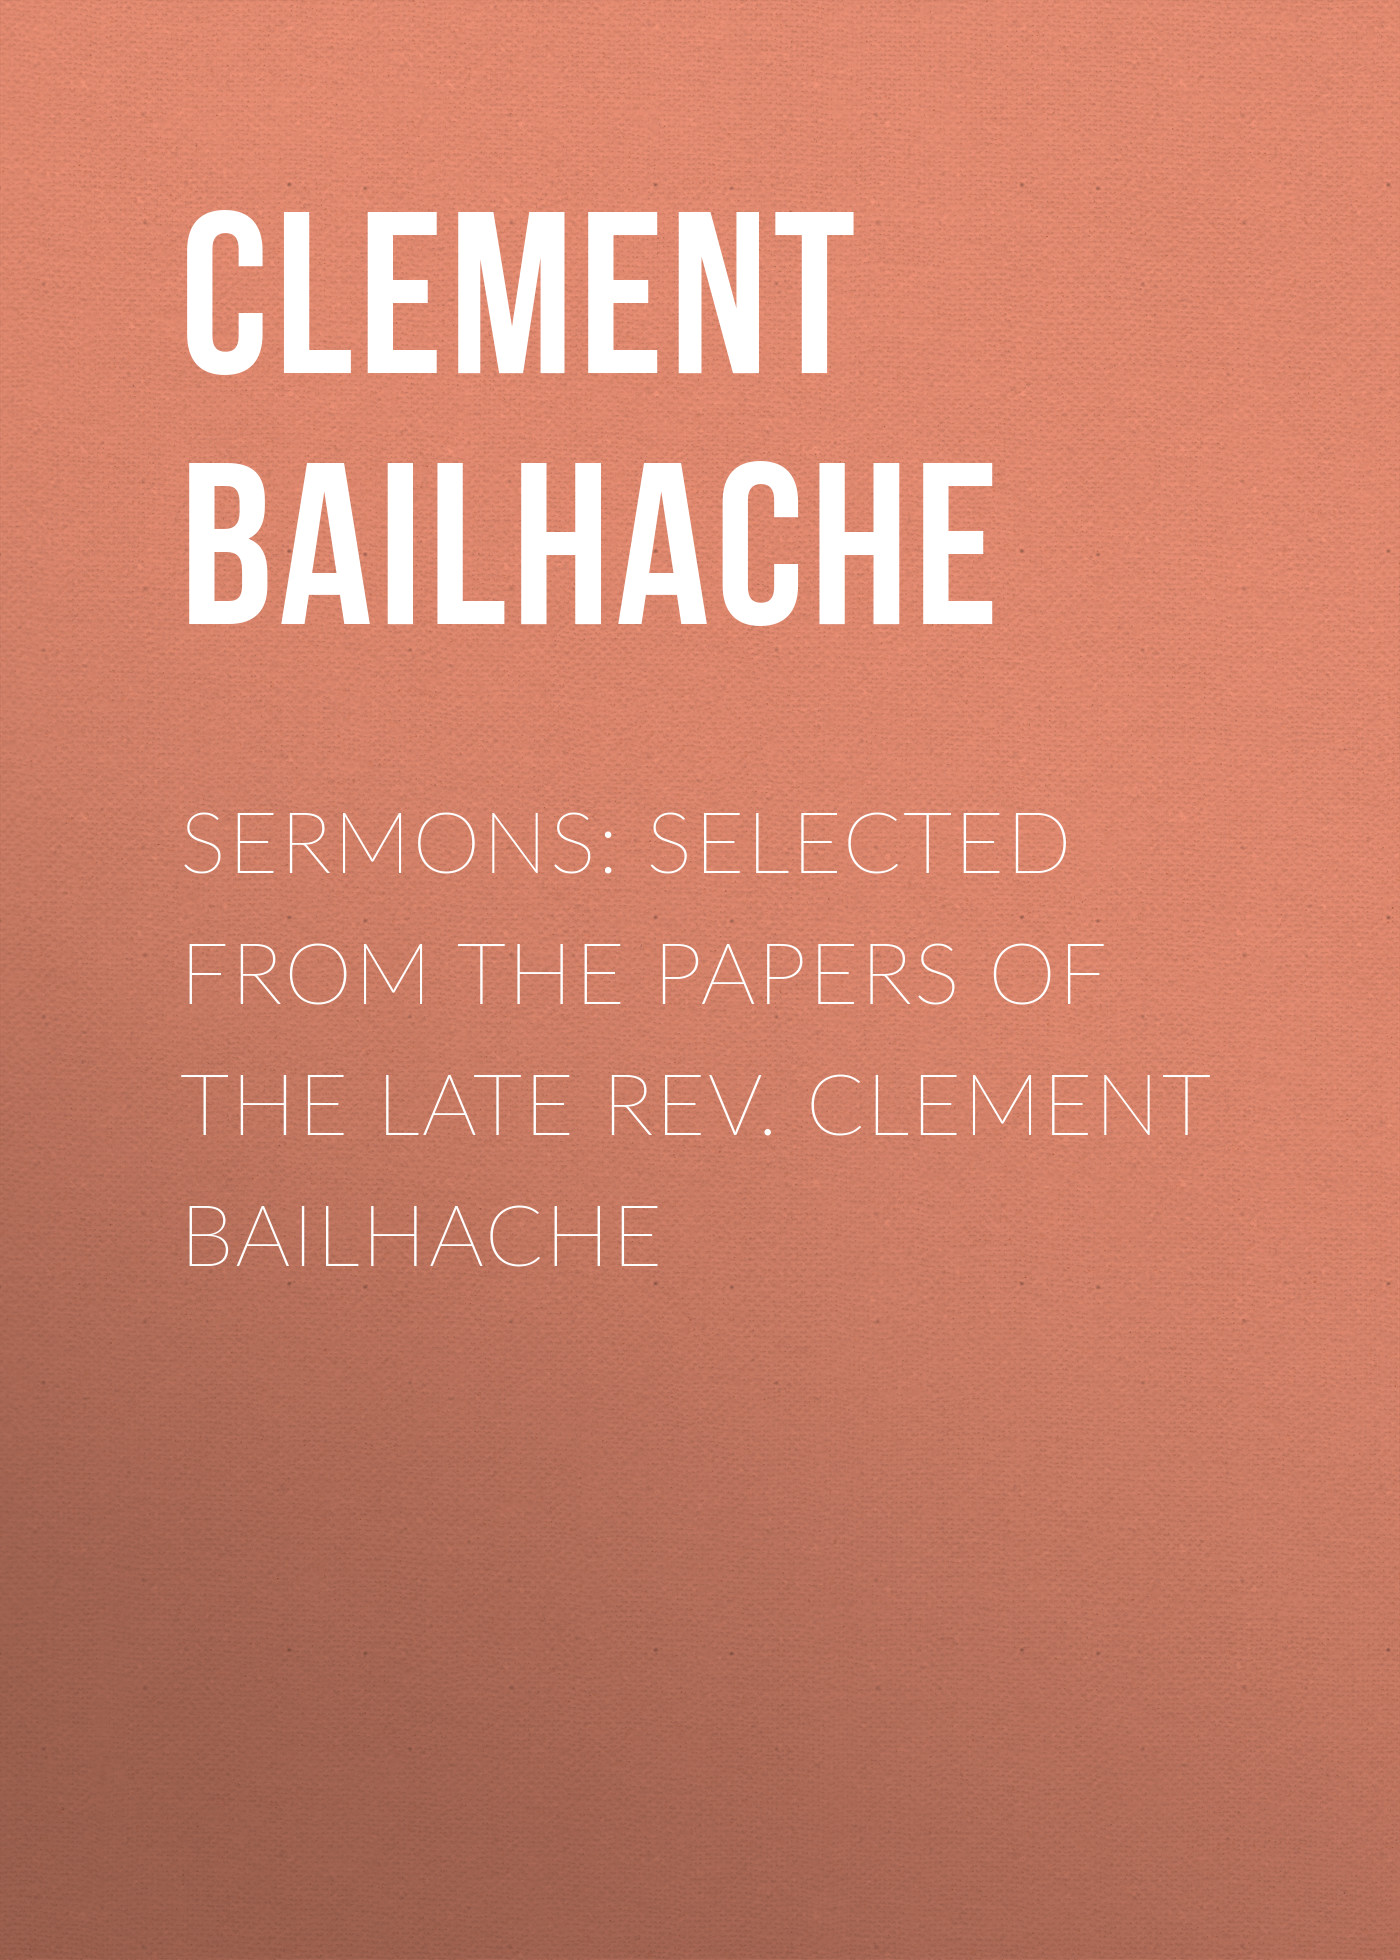 Clement Bailhache Sermons: Selected from the Papers of the Late Rev. Clement Bailhache